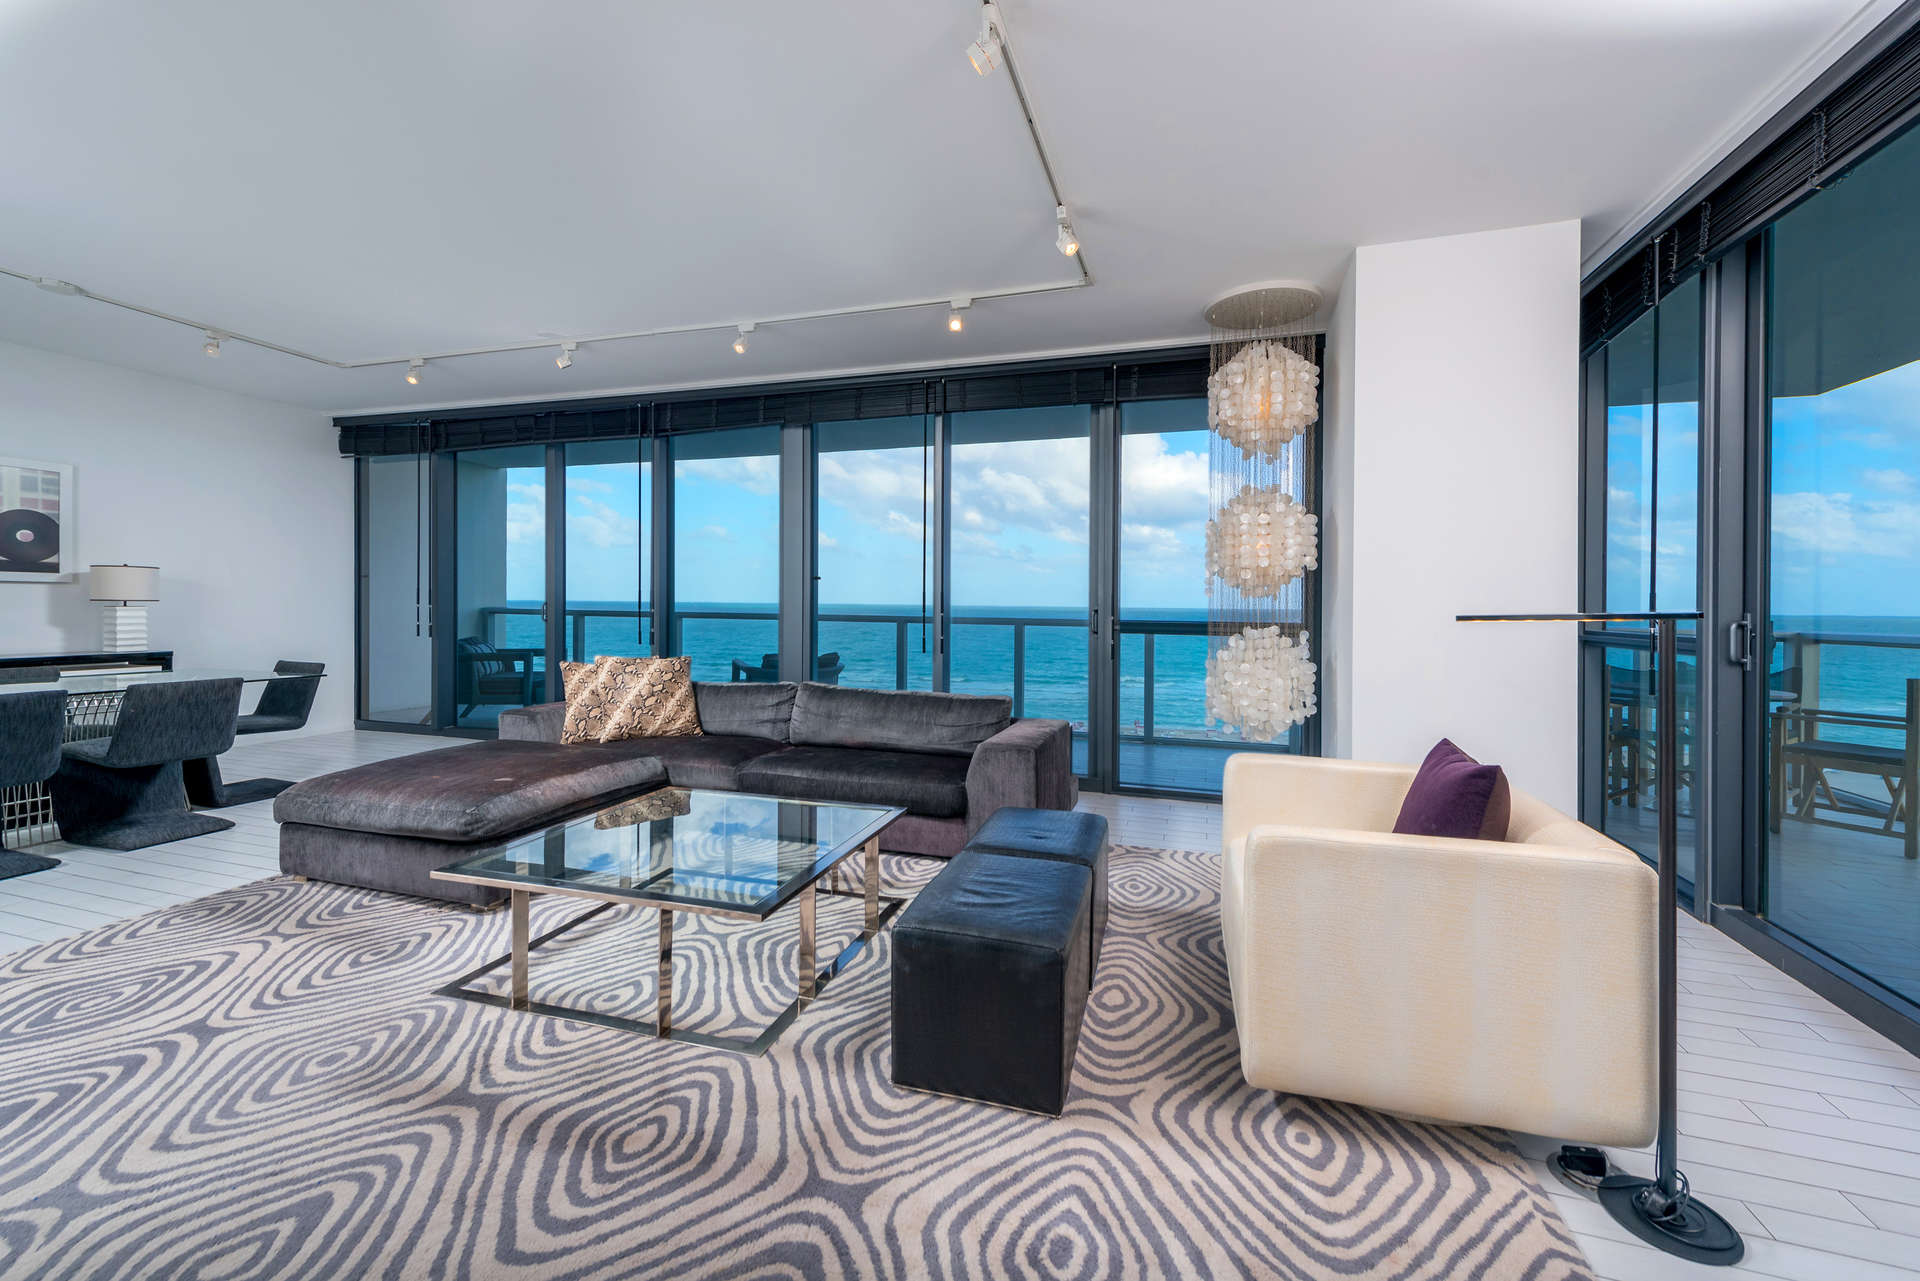 Luxury vacation rentals usa - Florida - Miami beach - W hotel south beach - #828 | 2 BDM with Den - Image 1/21